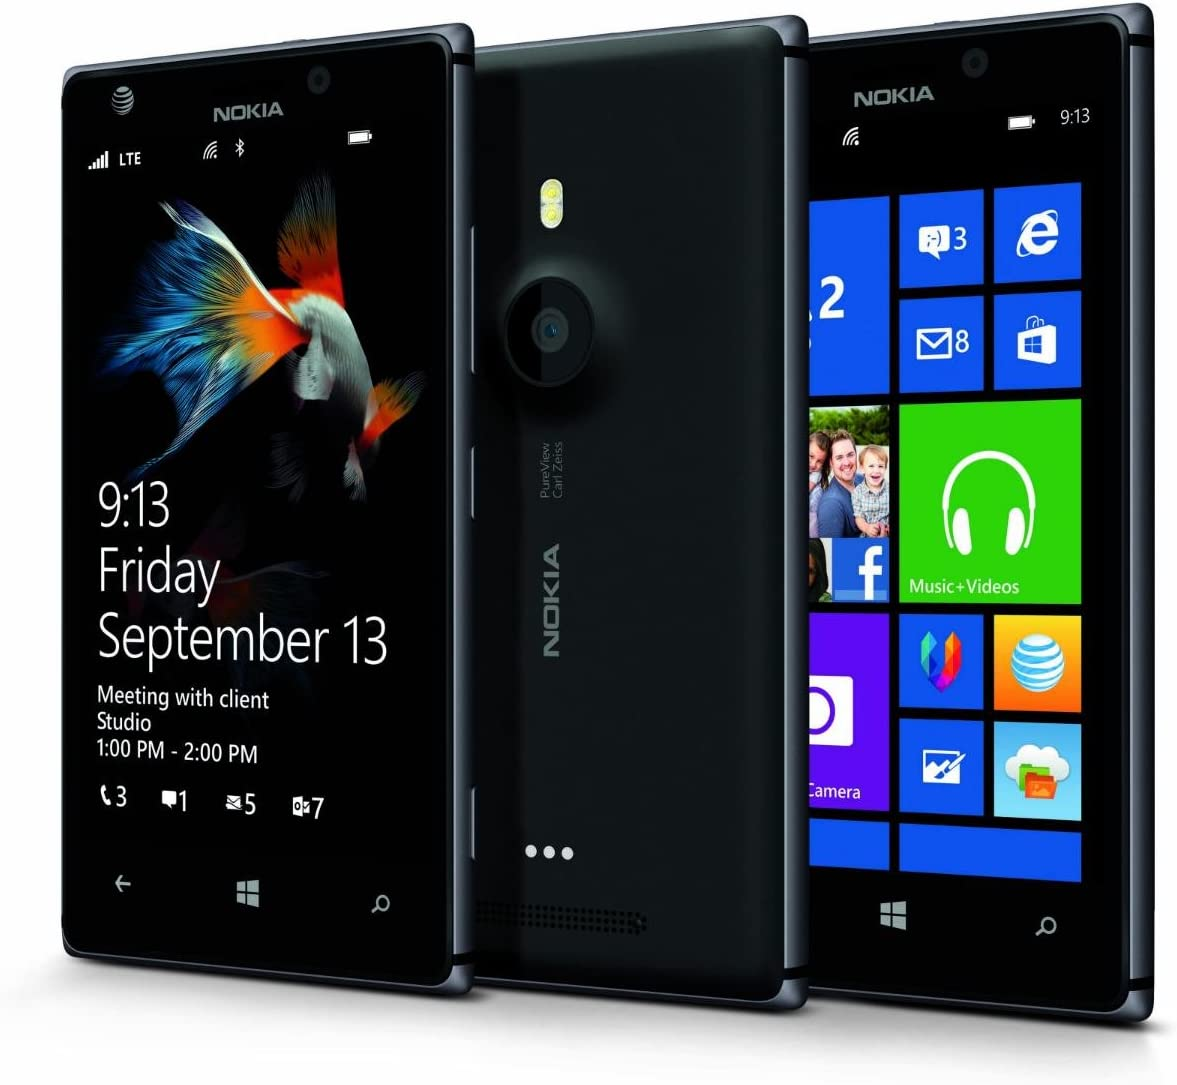 Amazon Com Nokia Lumia 925 Rm 893 At T Gsm 4g Lte Windows 8 Smartphone Black Dark Grey No Contract